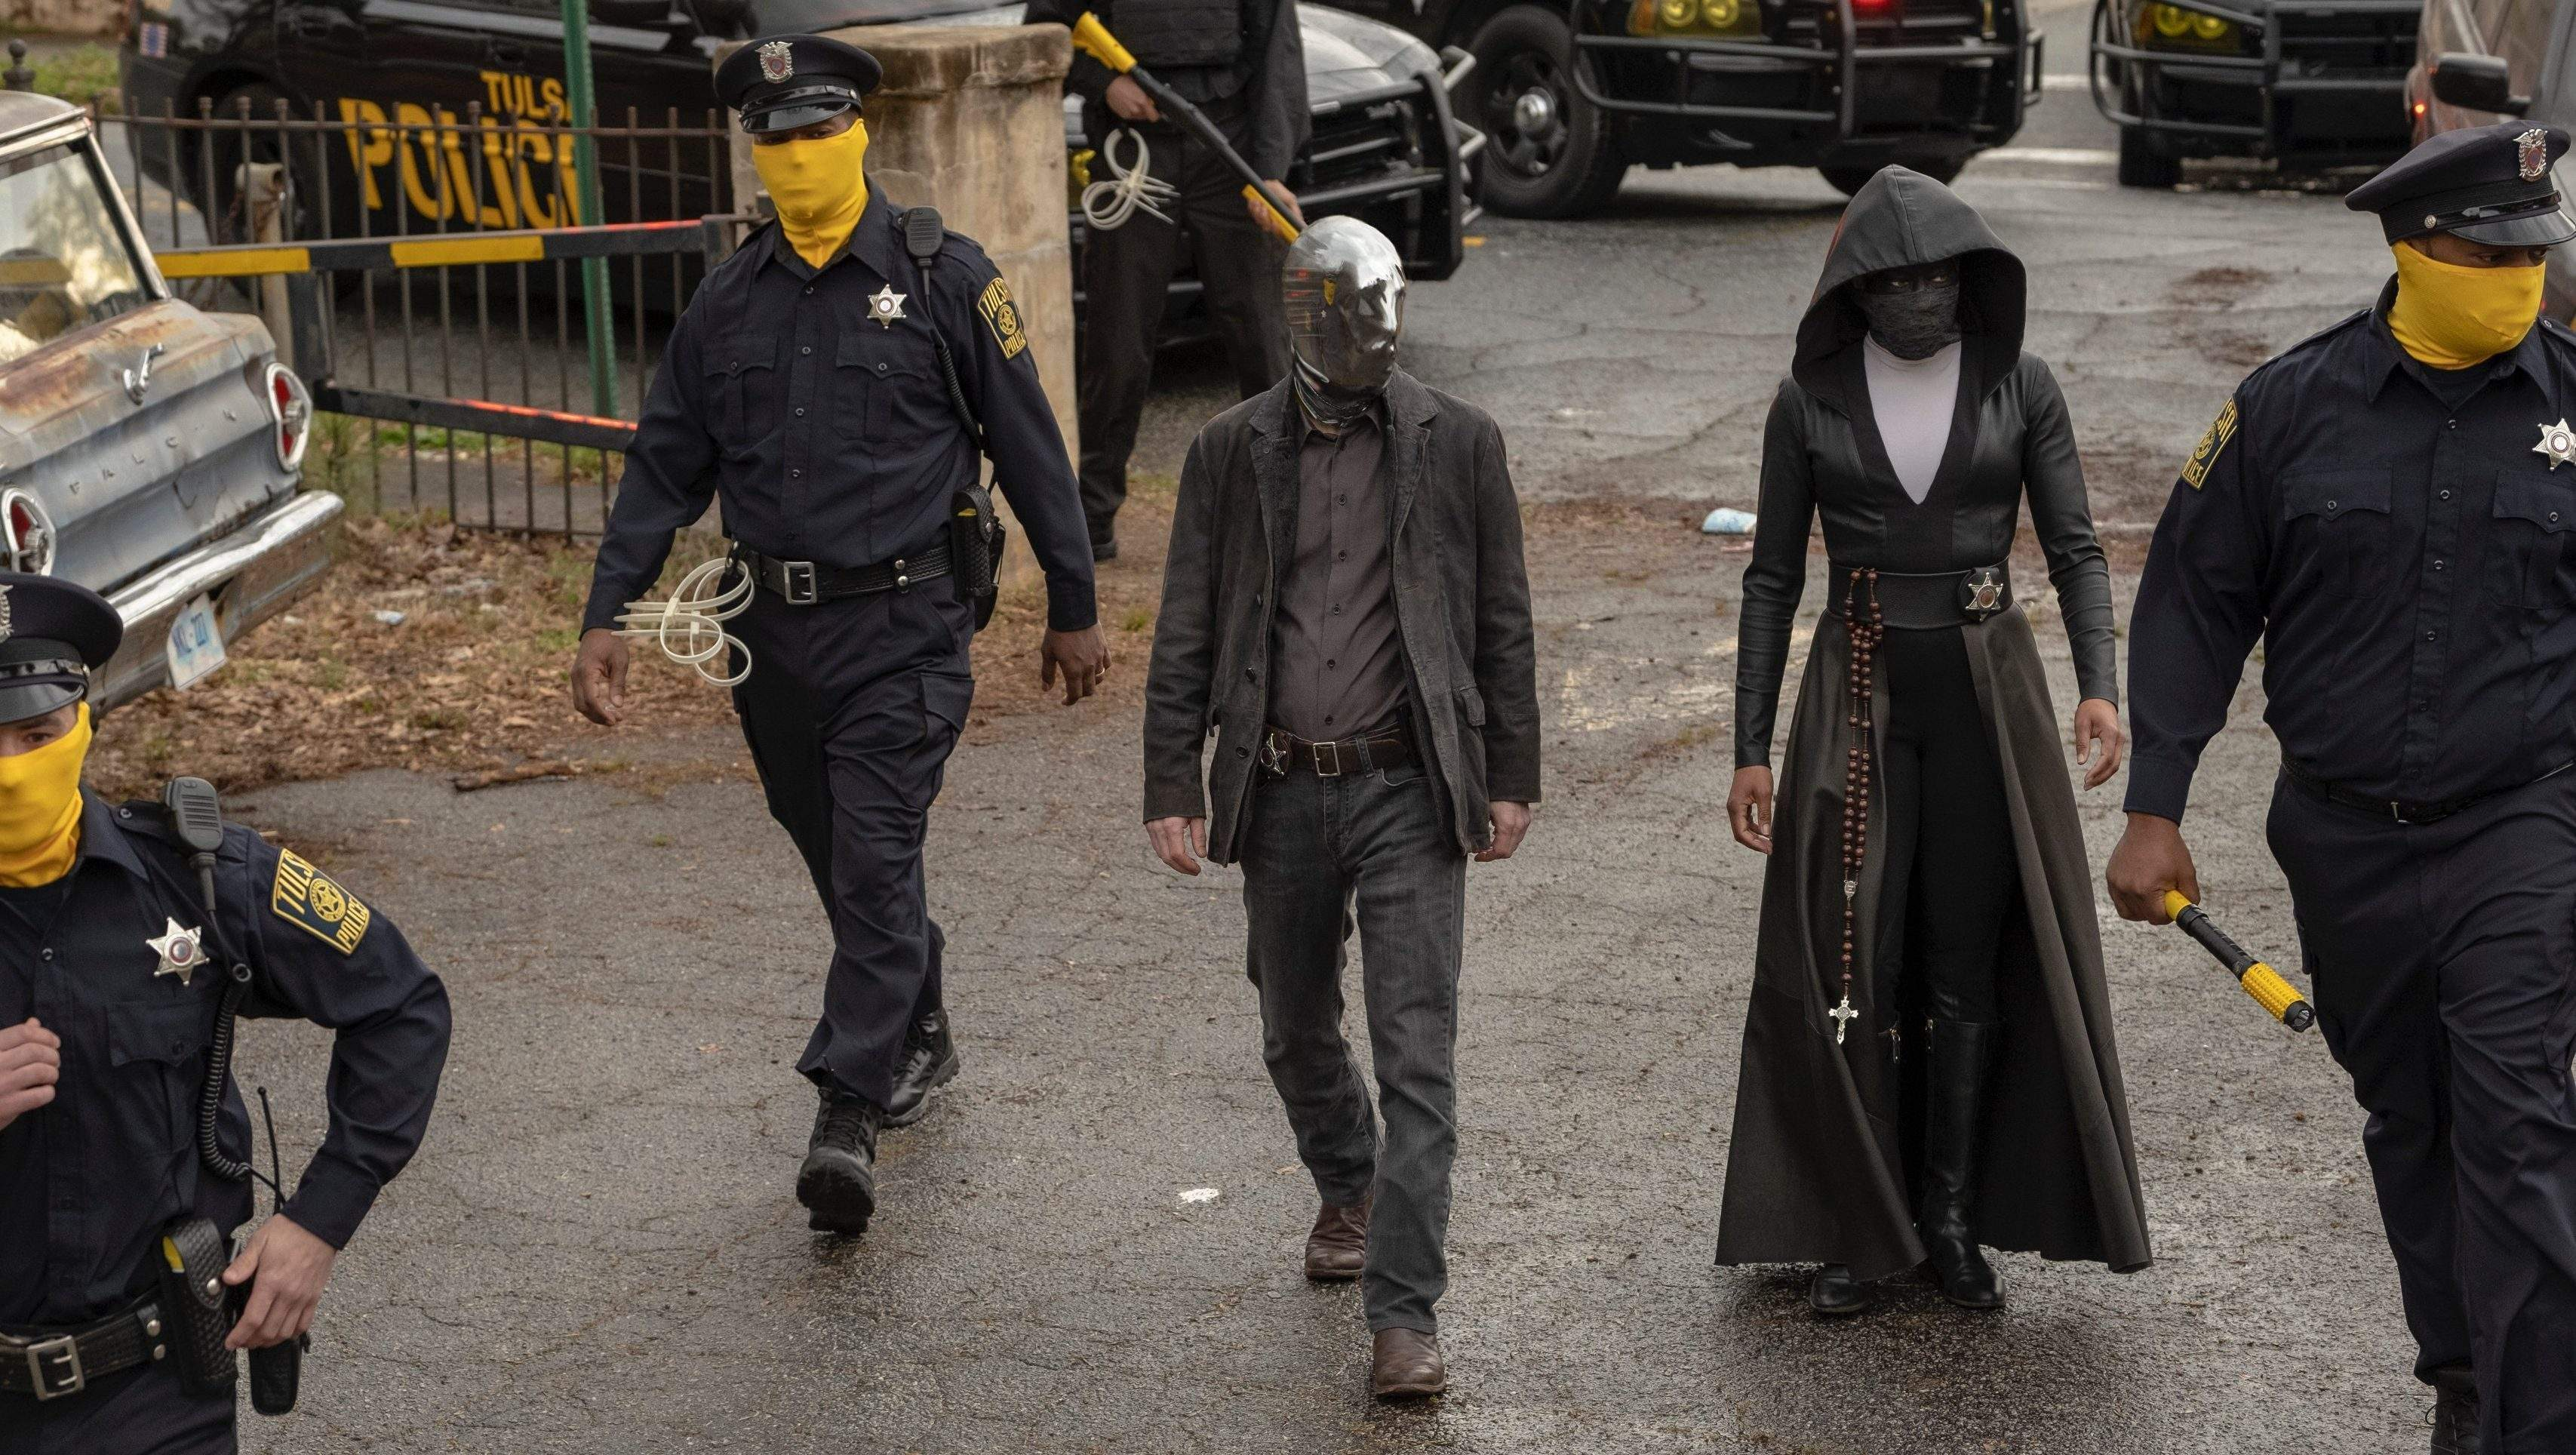 Watchmen Season 2 Cast and Plot Details